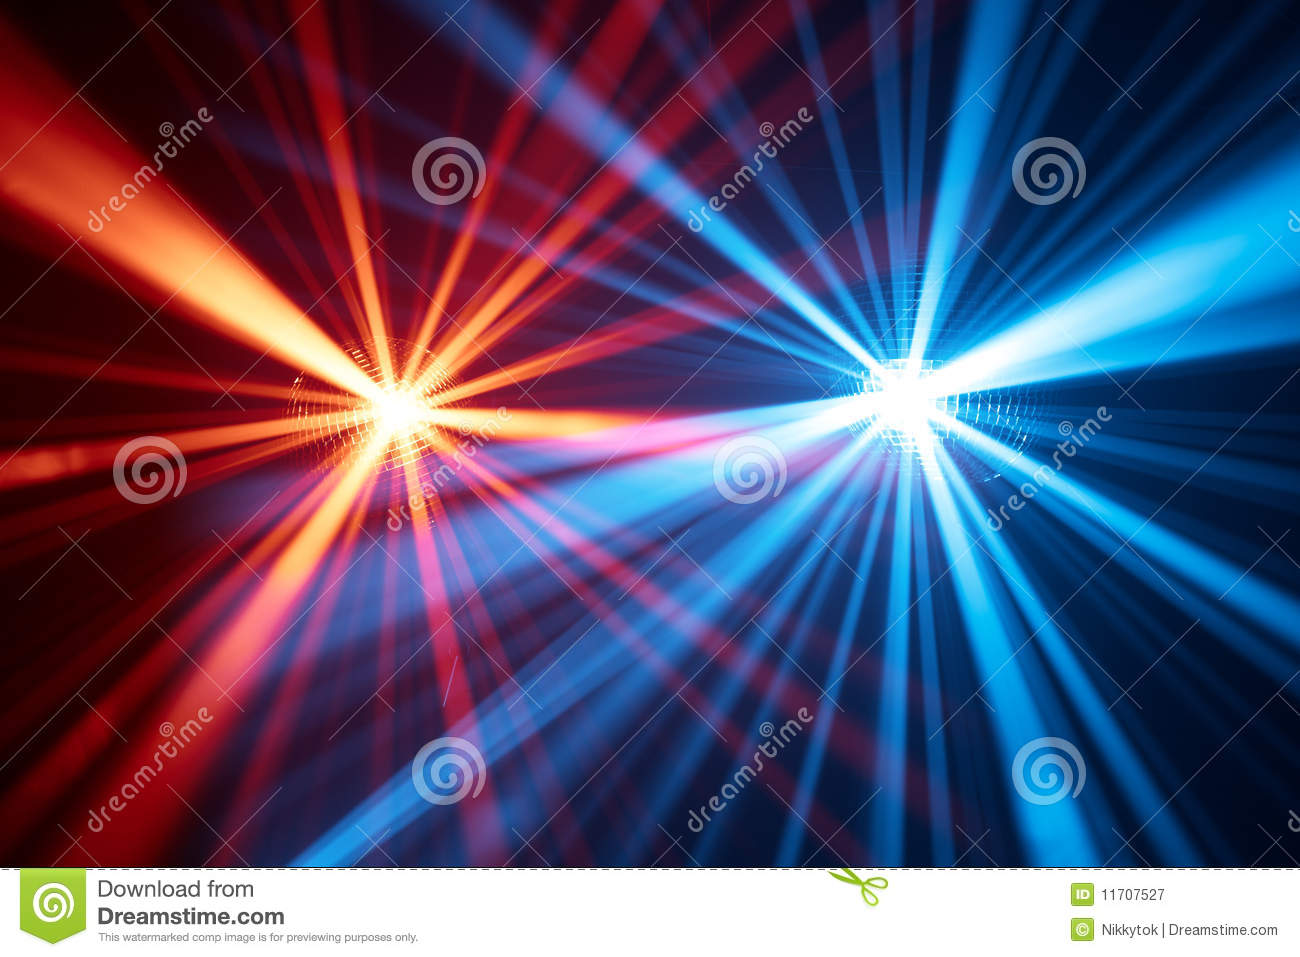 Fancy Club Light Effects In A Dark Background Stock: Disco Lights Background Royalty Free Stock Photography